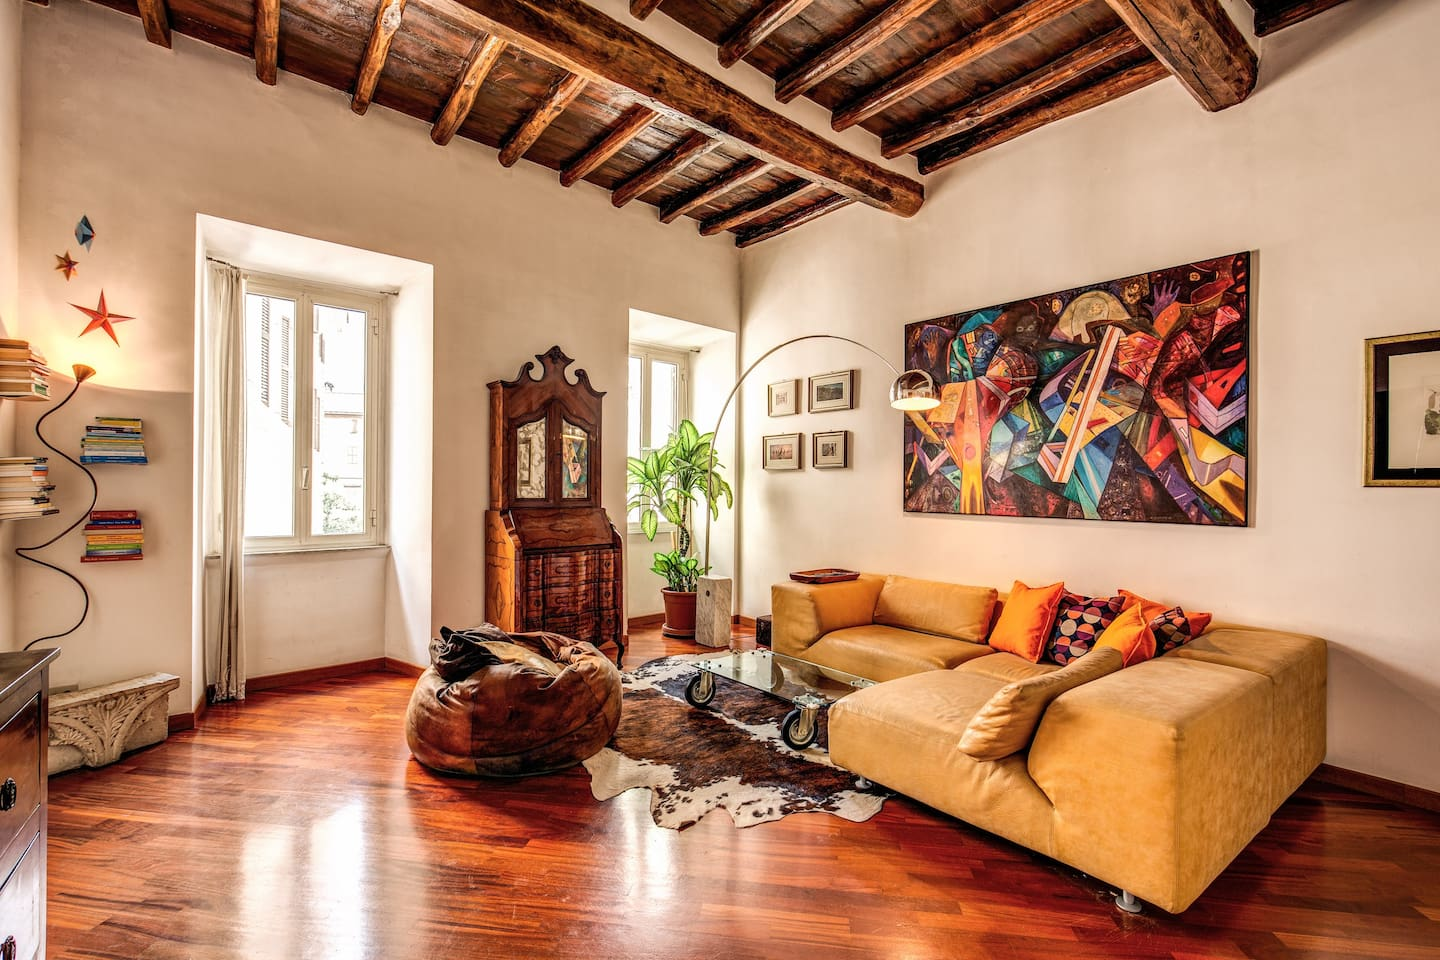 living room with parquet floors and original wooden beams of the 1500 with a super comfortable sofa, TV, antique furniture in fusion with modern style